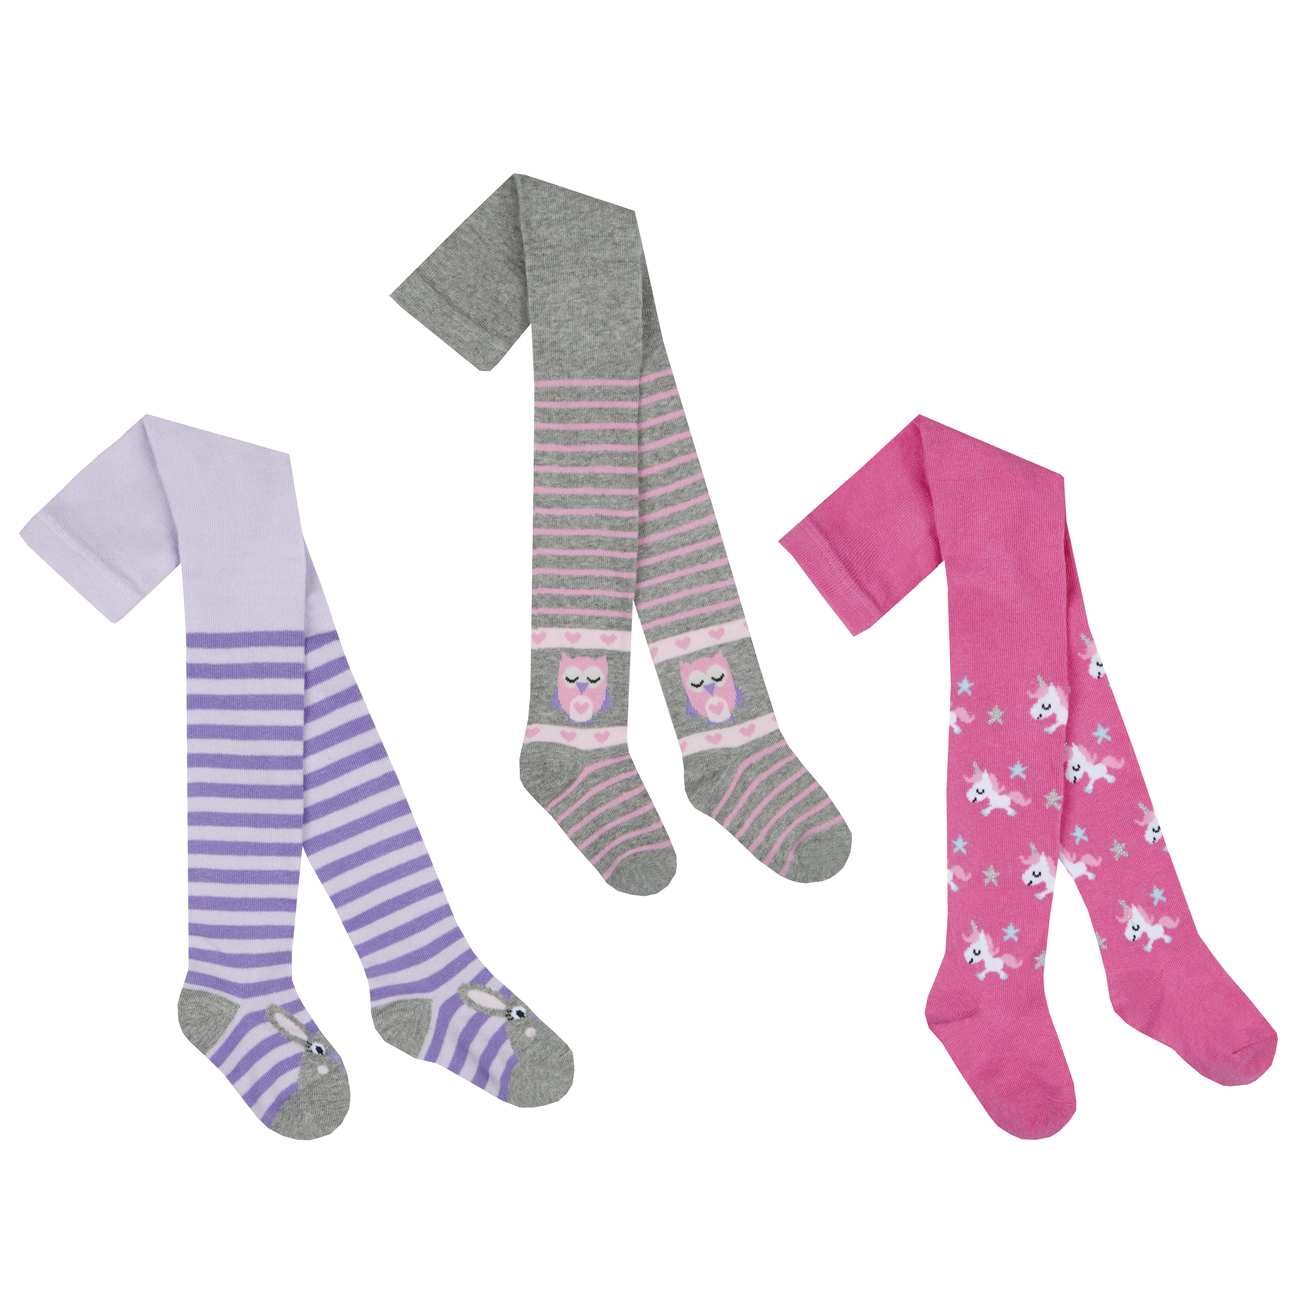 476b5956765ef Baby Girls Cotton Rich Tights 3 Pack Toddler Patterned Bunny Unicorn Striped